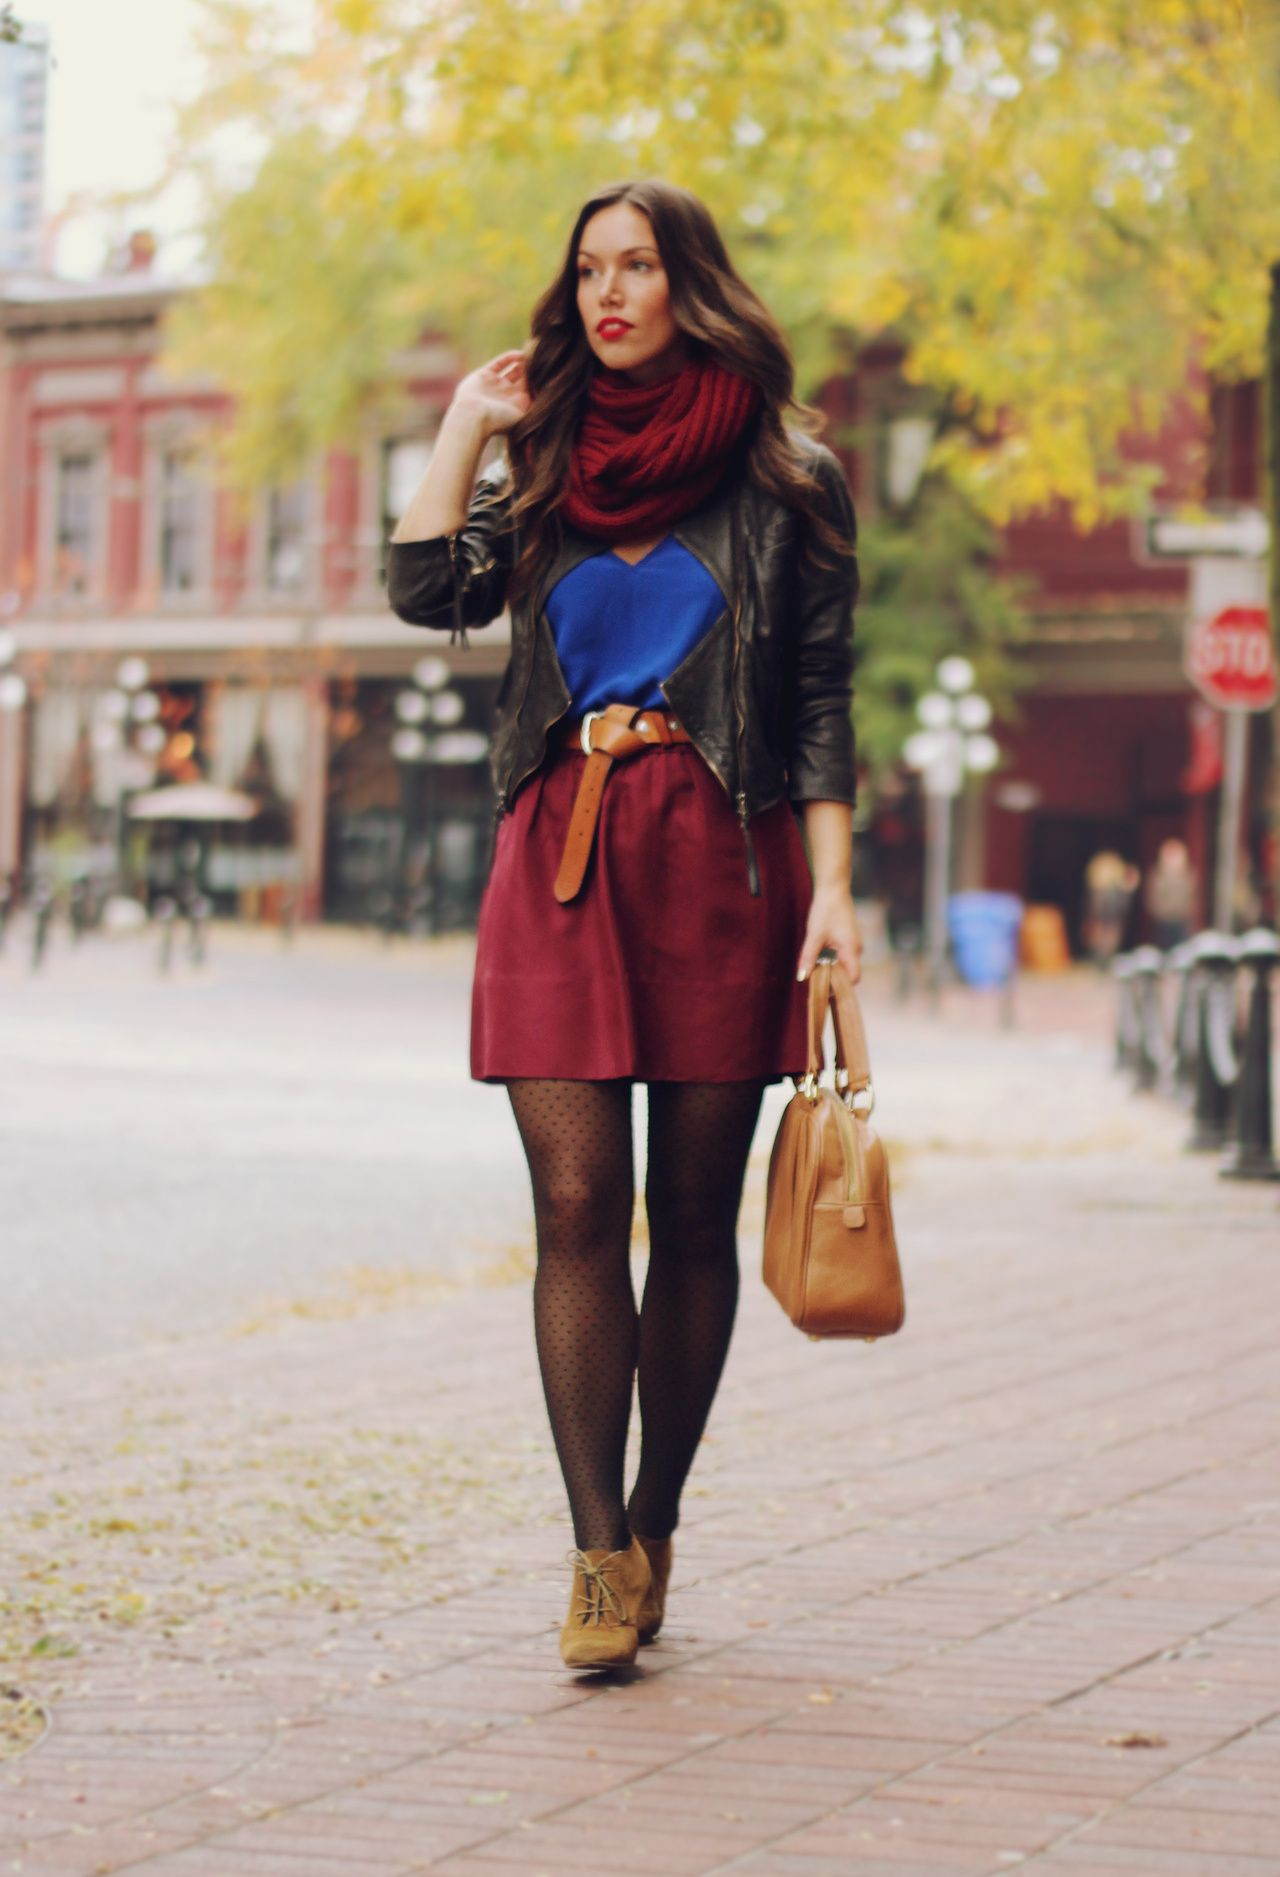 Big scarf, patterned tights, love it!